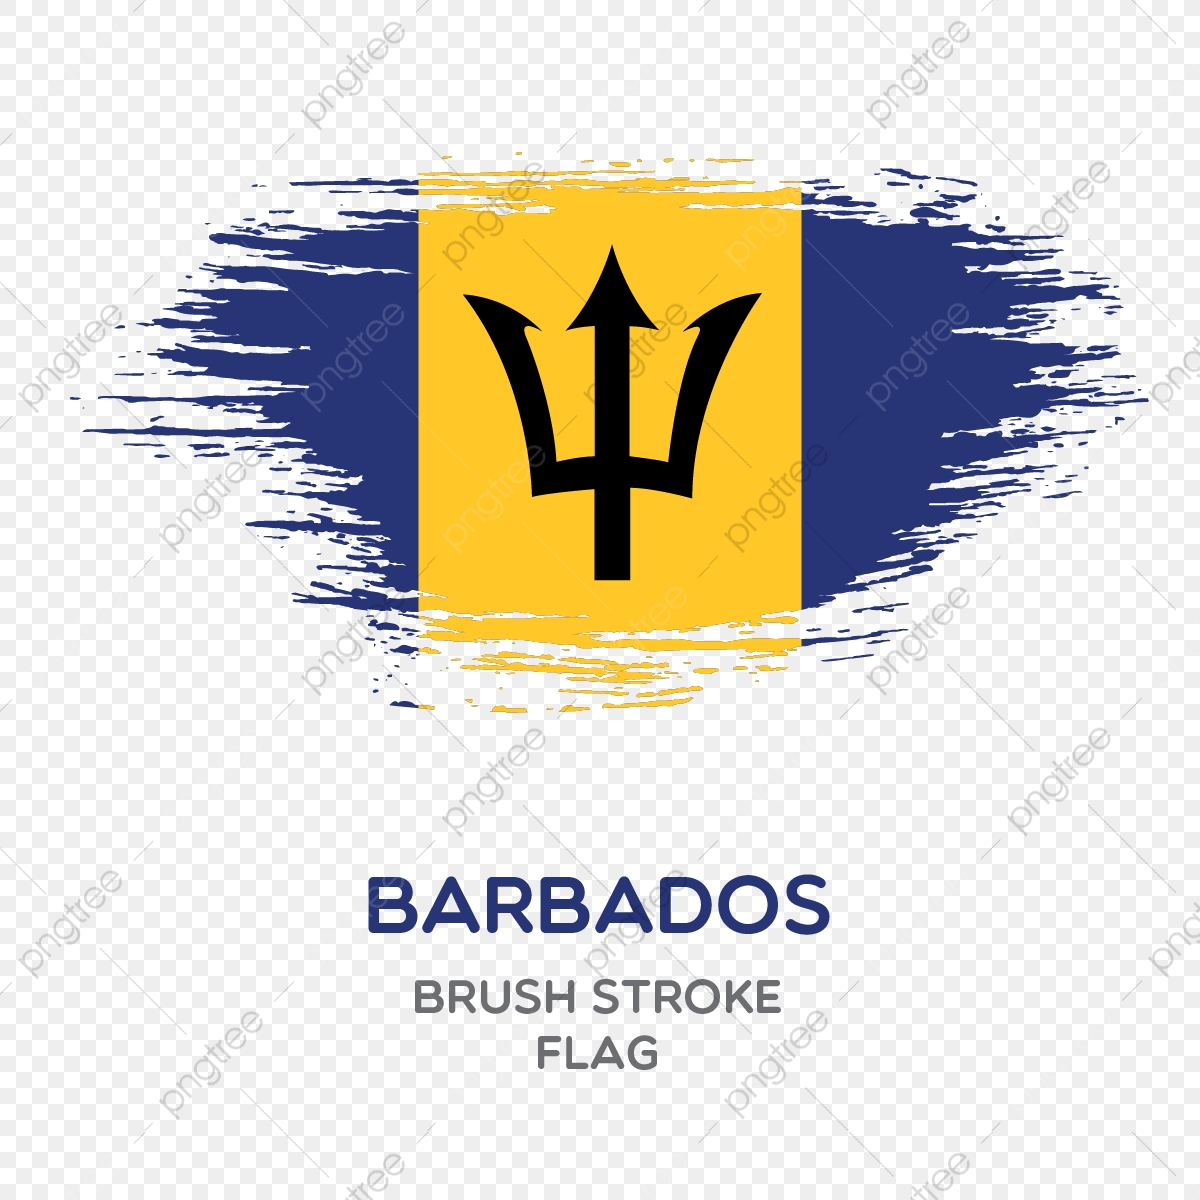 Barbados Brush Stroke Flag Brush Stroke Flags Country Flag National Flag Png And Vector With Transparent Background For Free Download